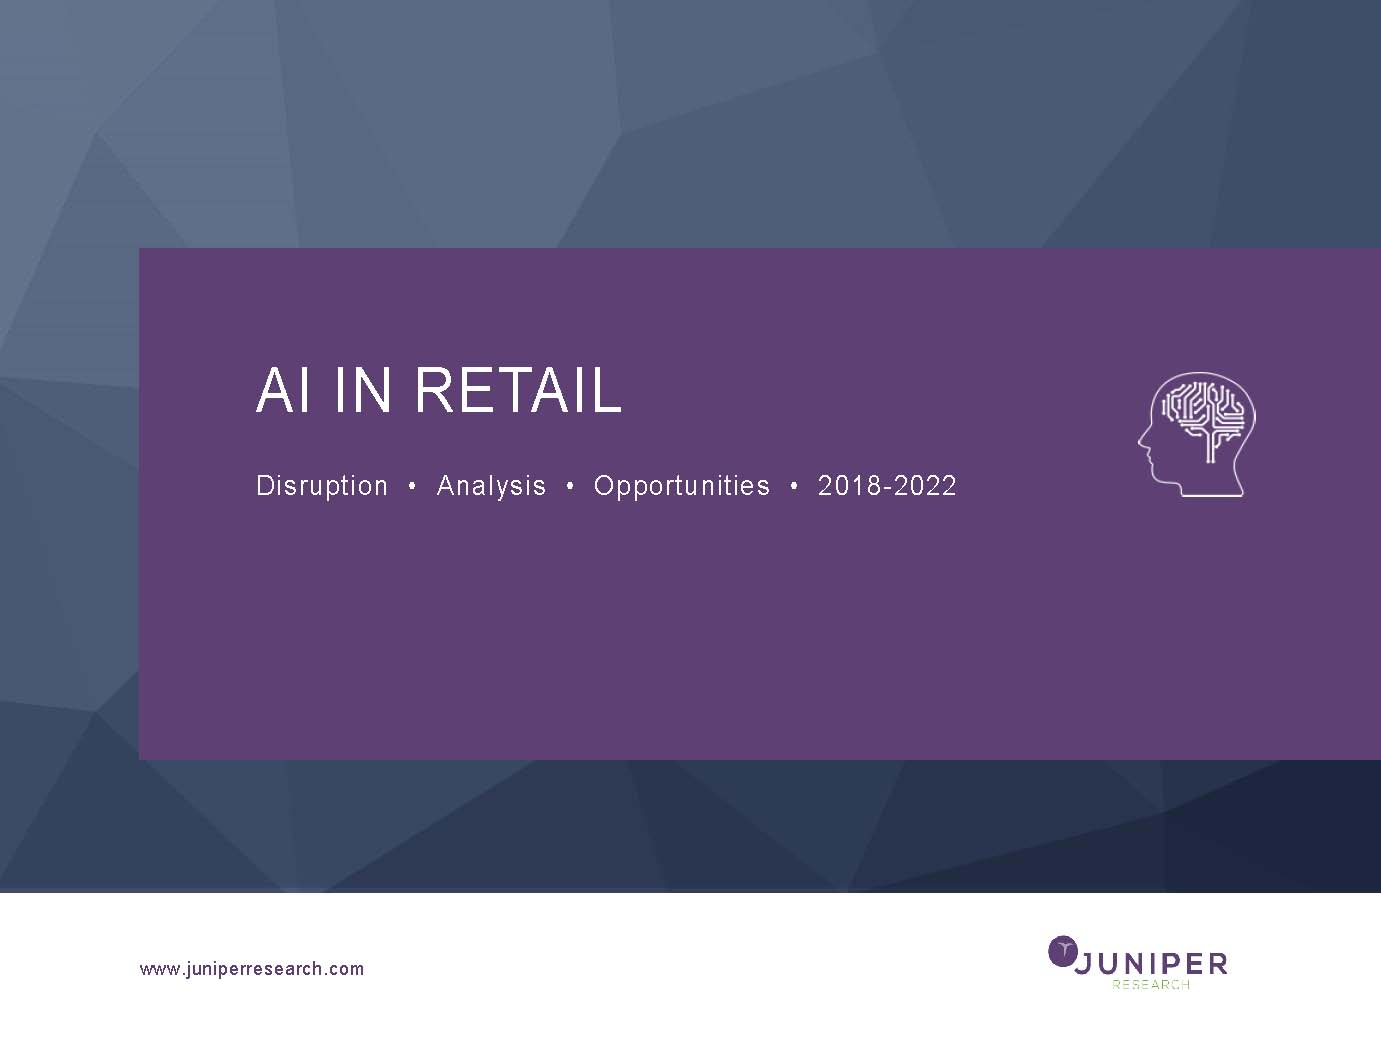 AI in Retail: Disruption, Analysis & Opportunities 2018-2022 Full Research Suite